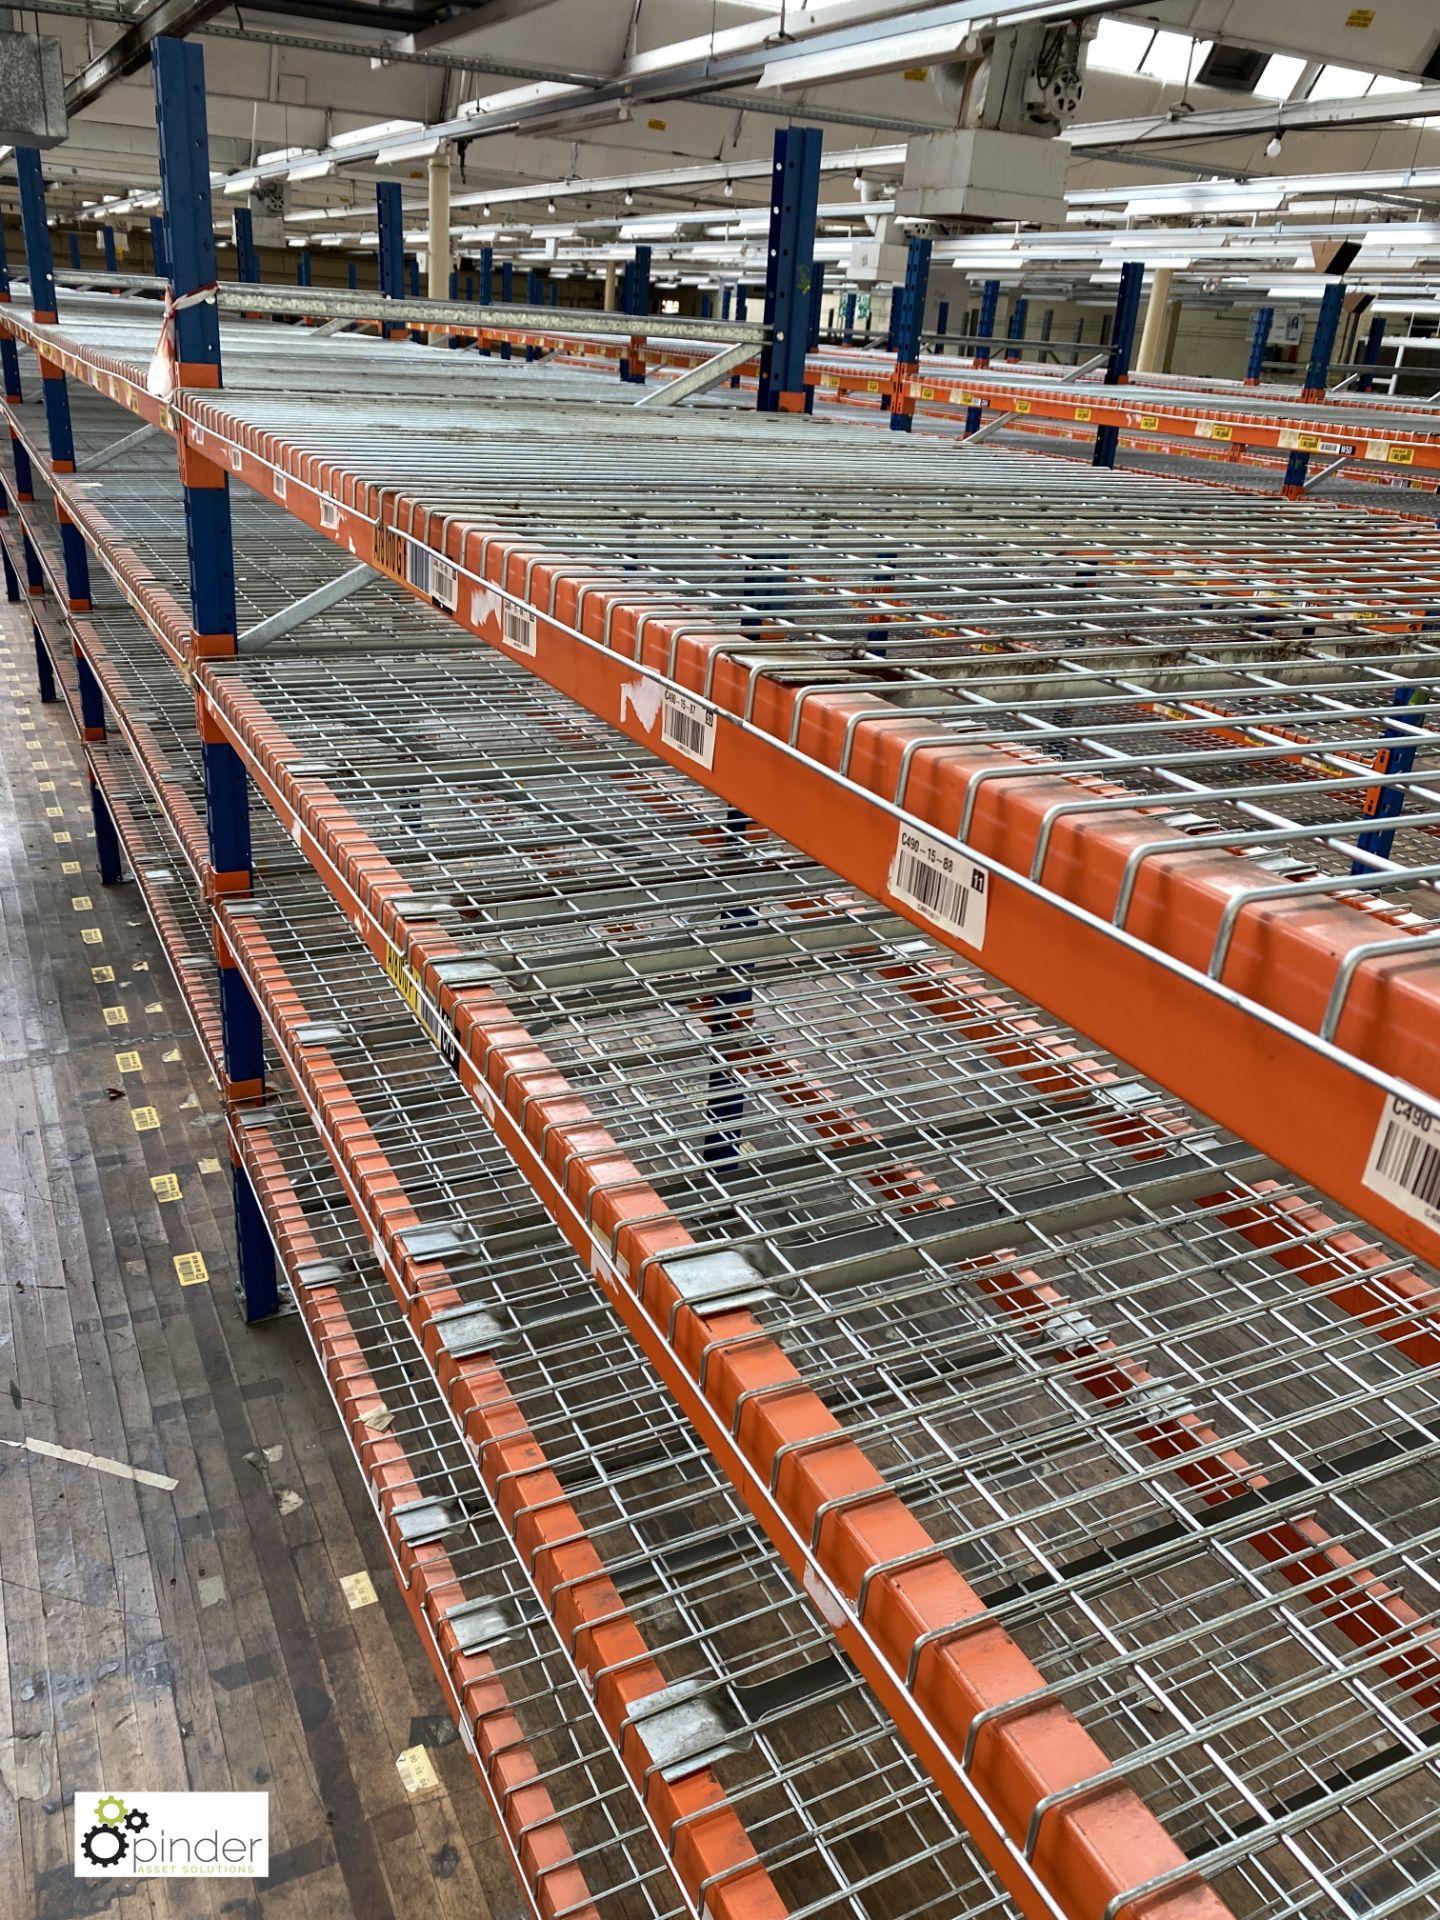 8 bays PSS 2K85 16 boltless Stock Racking, comprising 9 uprights 2400mm x 1200mm, 64 beams 2700mm, - Image 2 of 3